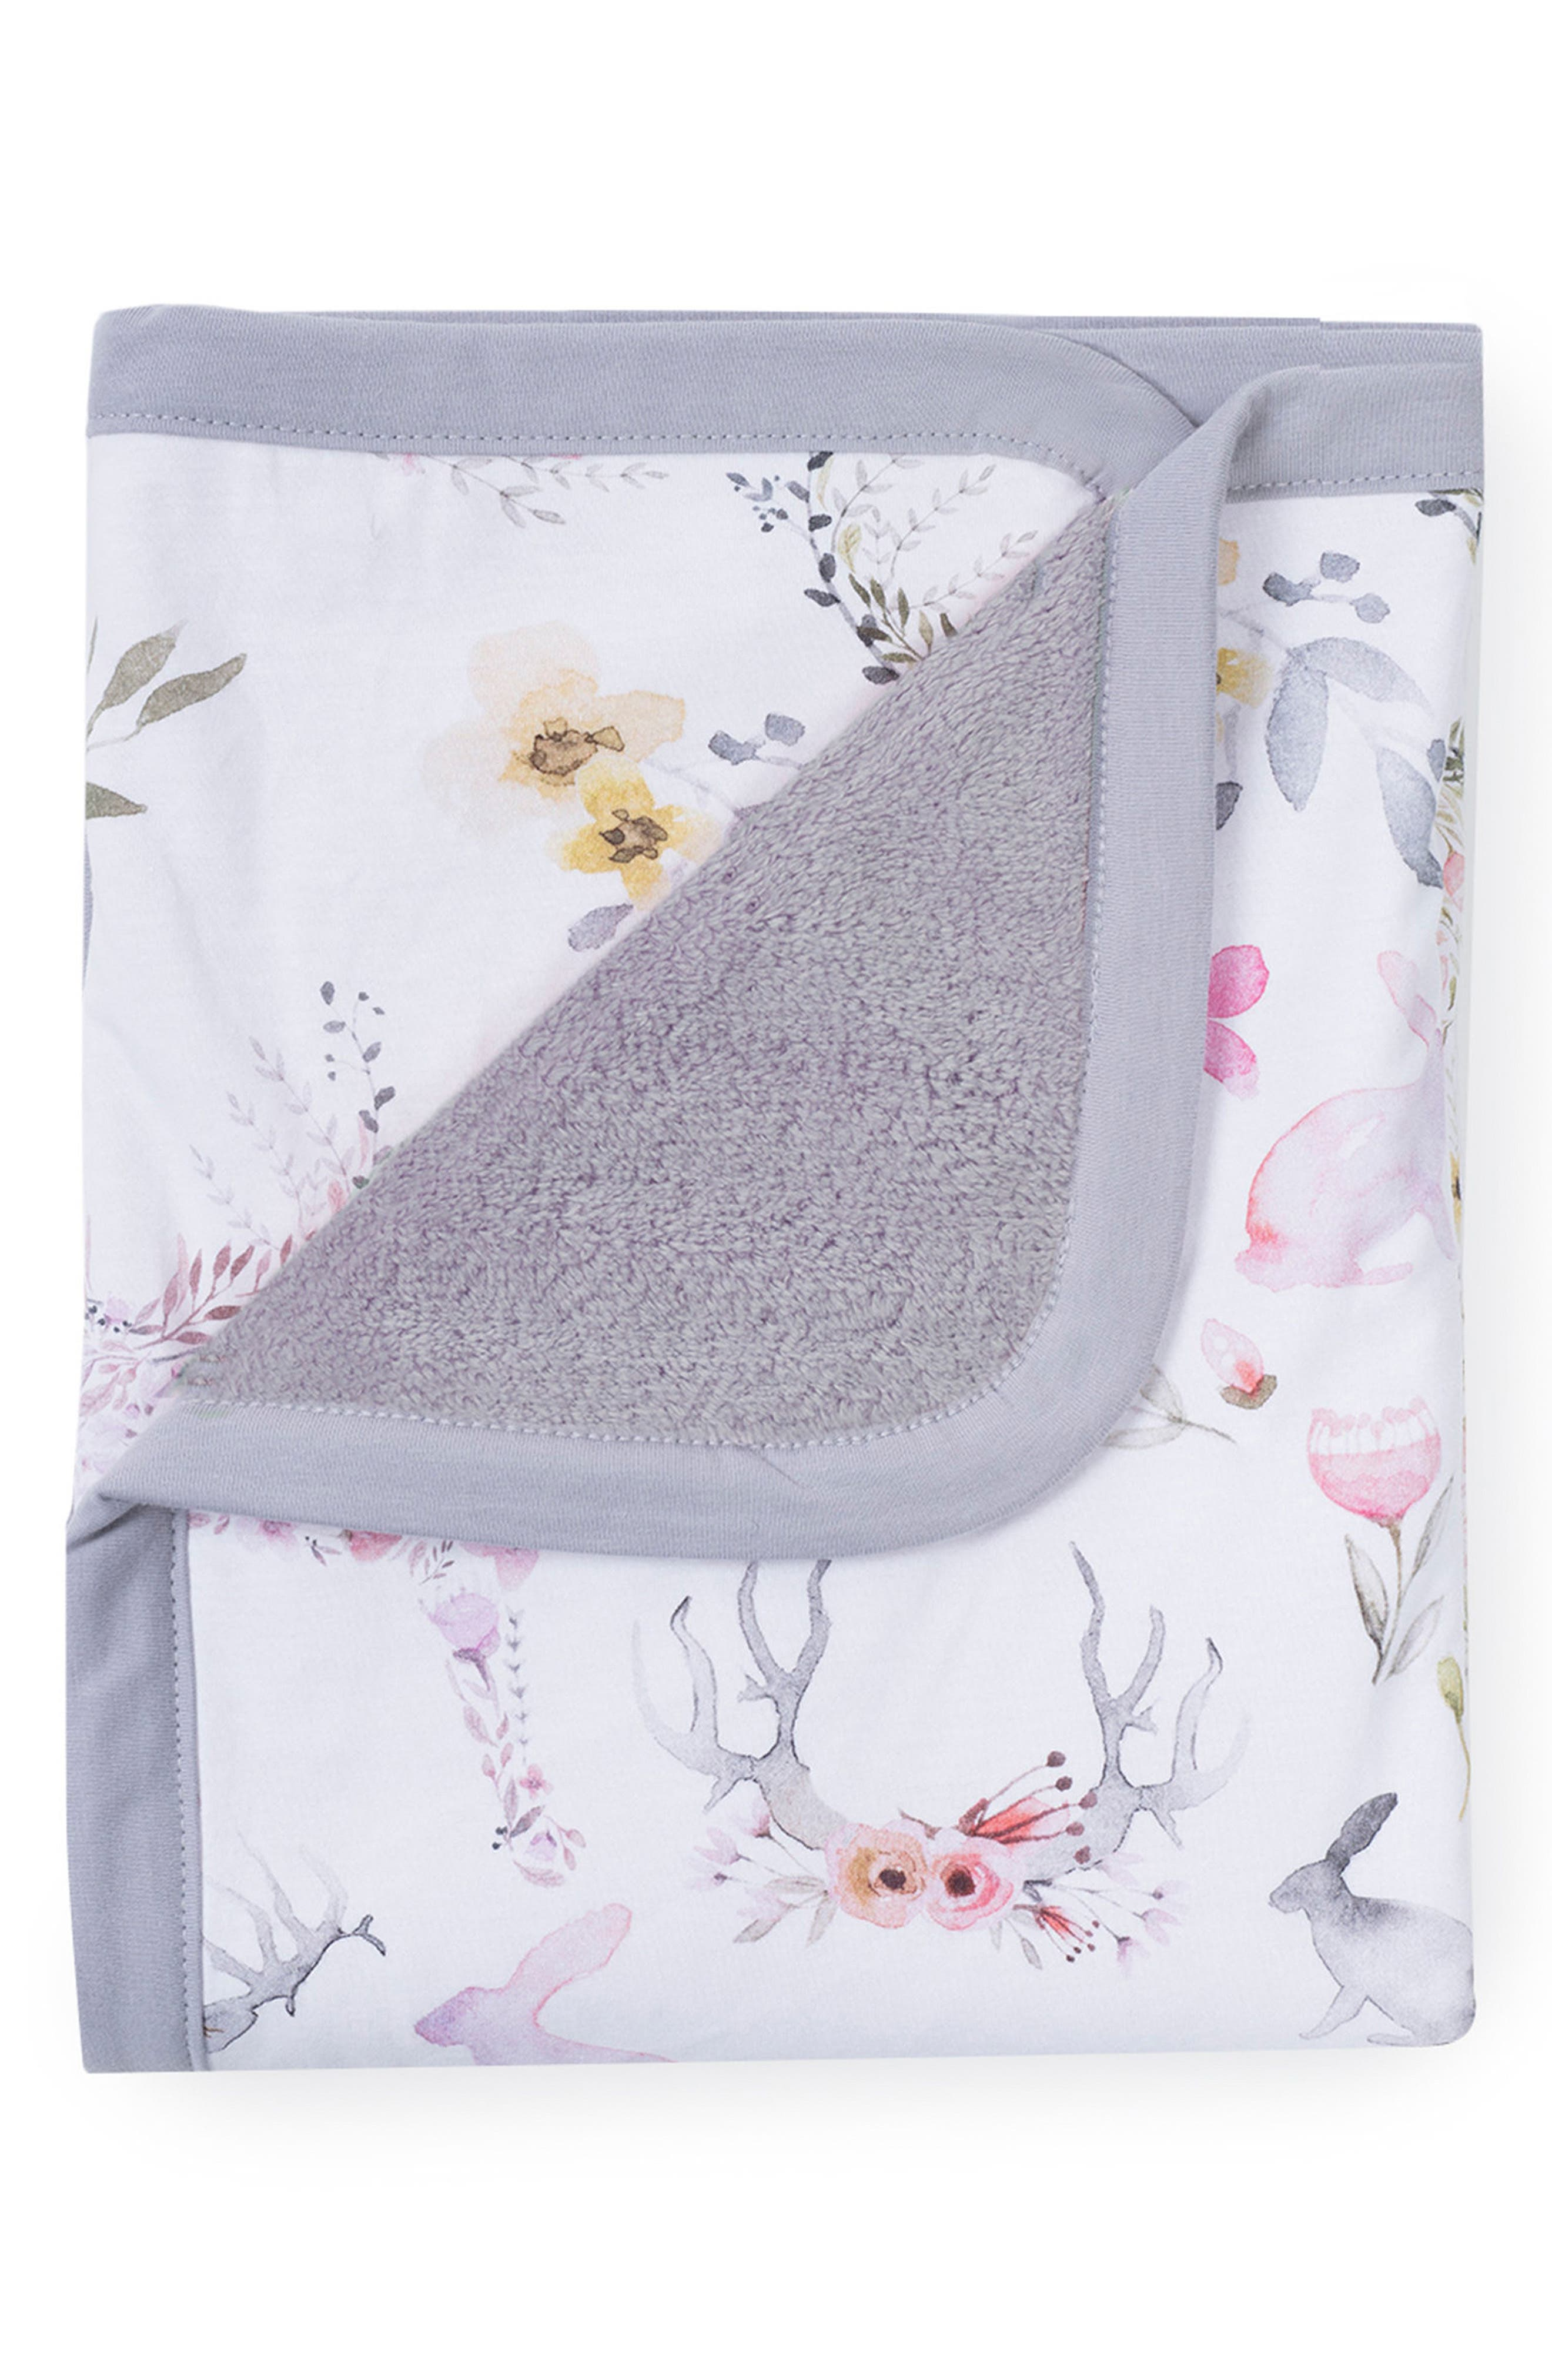 Fawn Cuddle Blanket & Star Pillow Set,                             Alternate thumbnail 3, color,                             FAWN